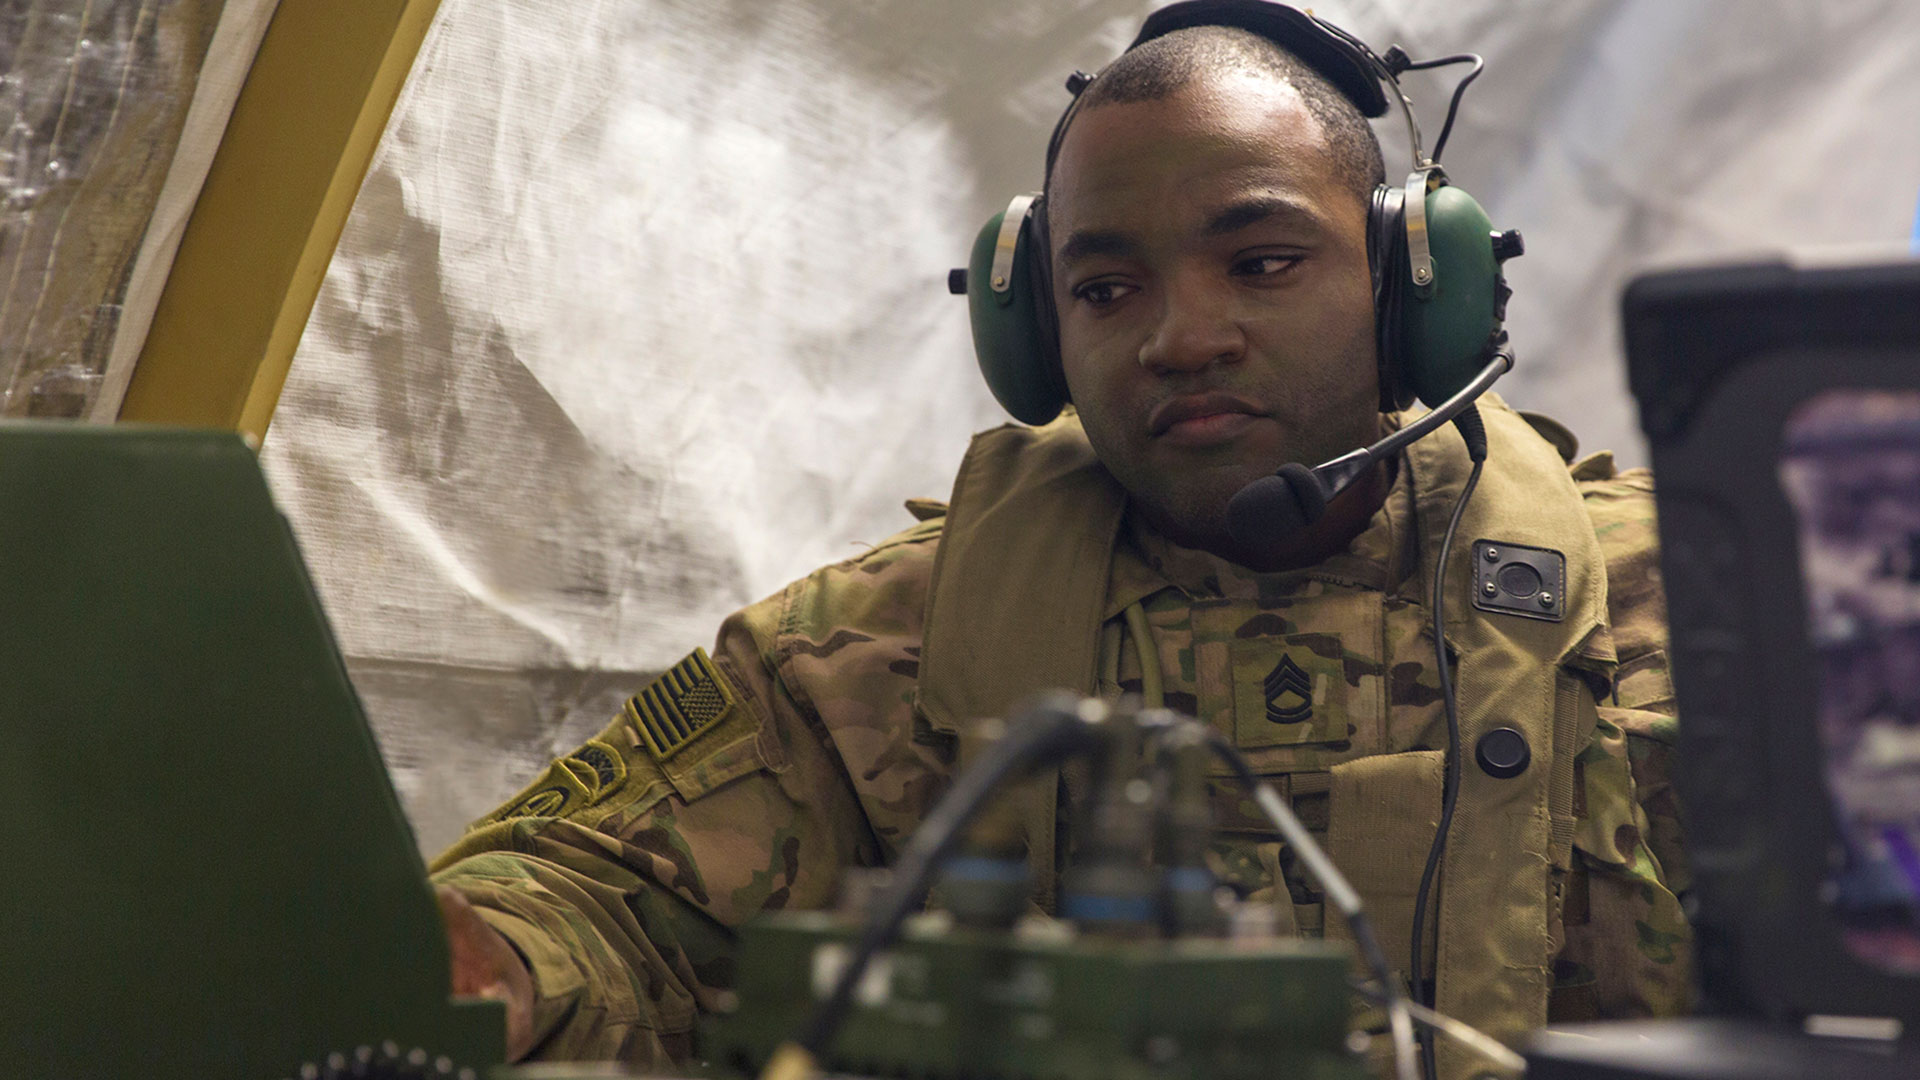 Picture of military man with a headset on using computer equipment